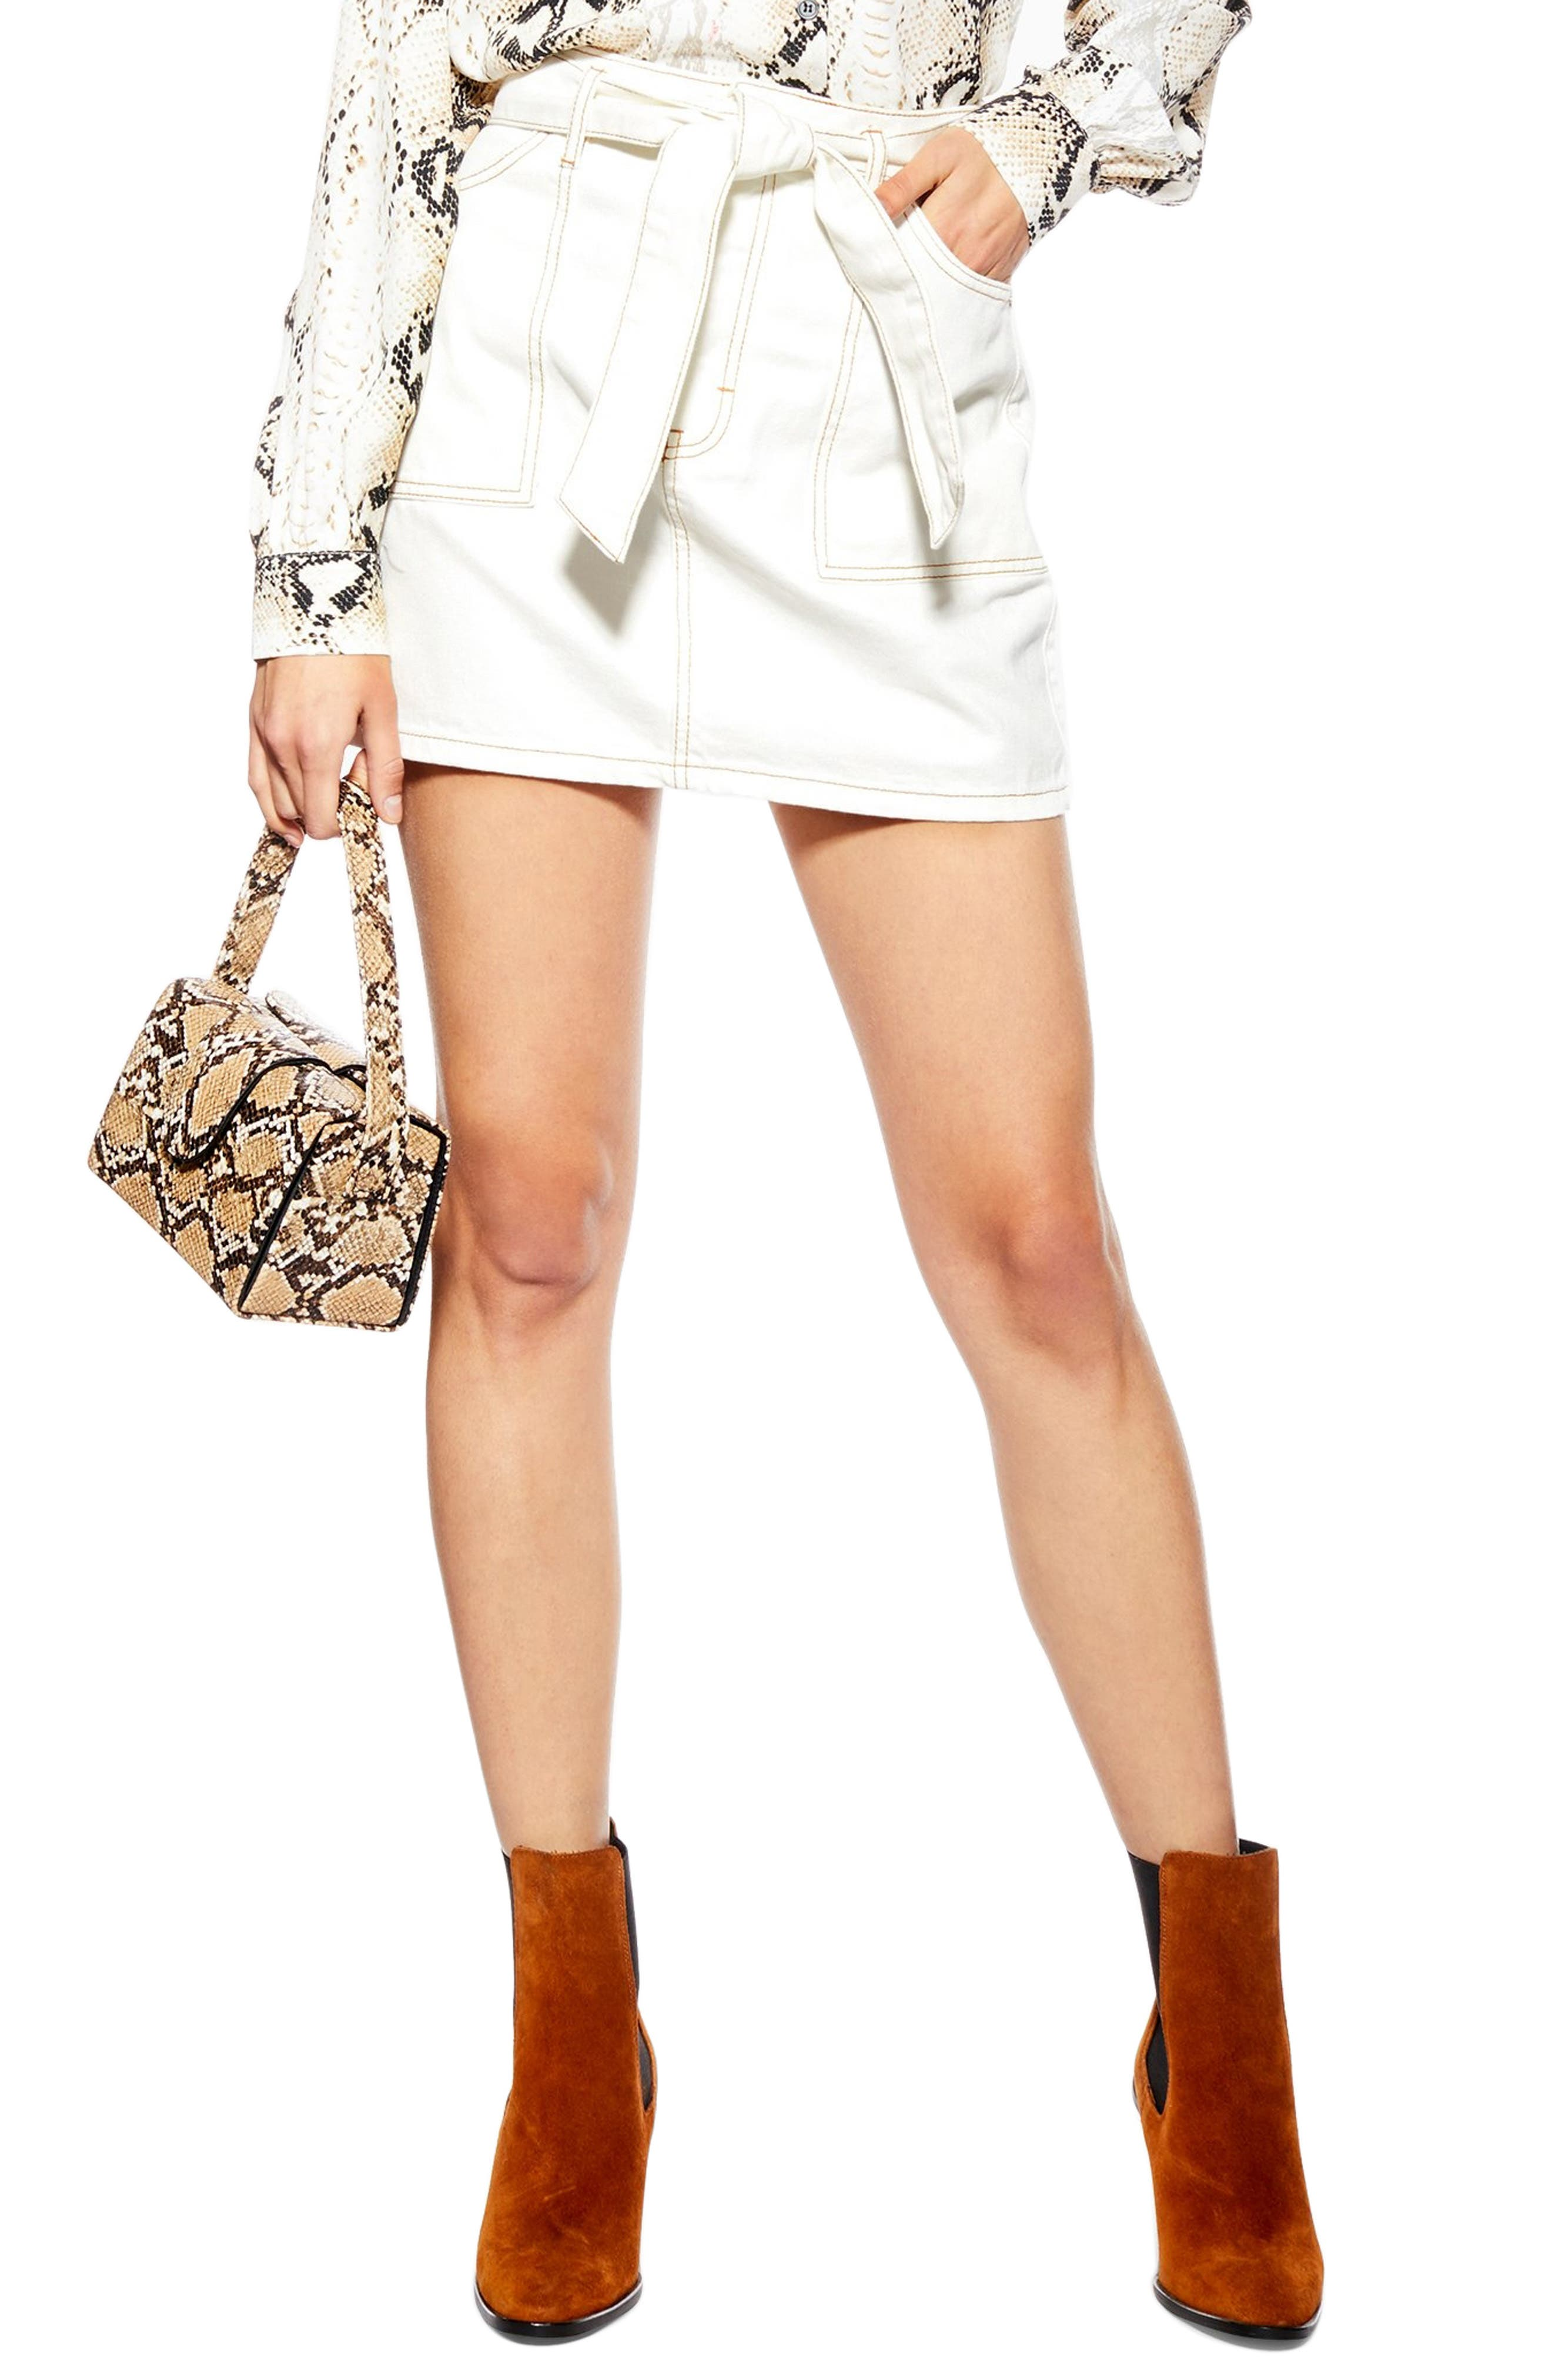 Topshop Belted Utility Skirt, US (fits like 0-2) - White